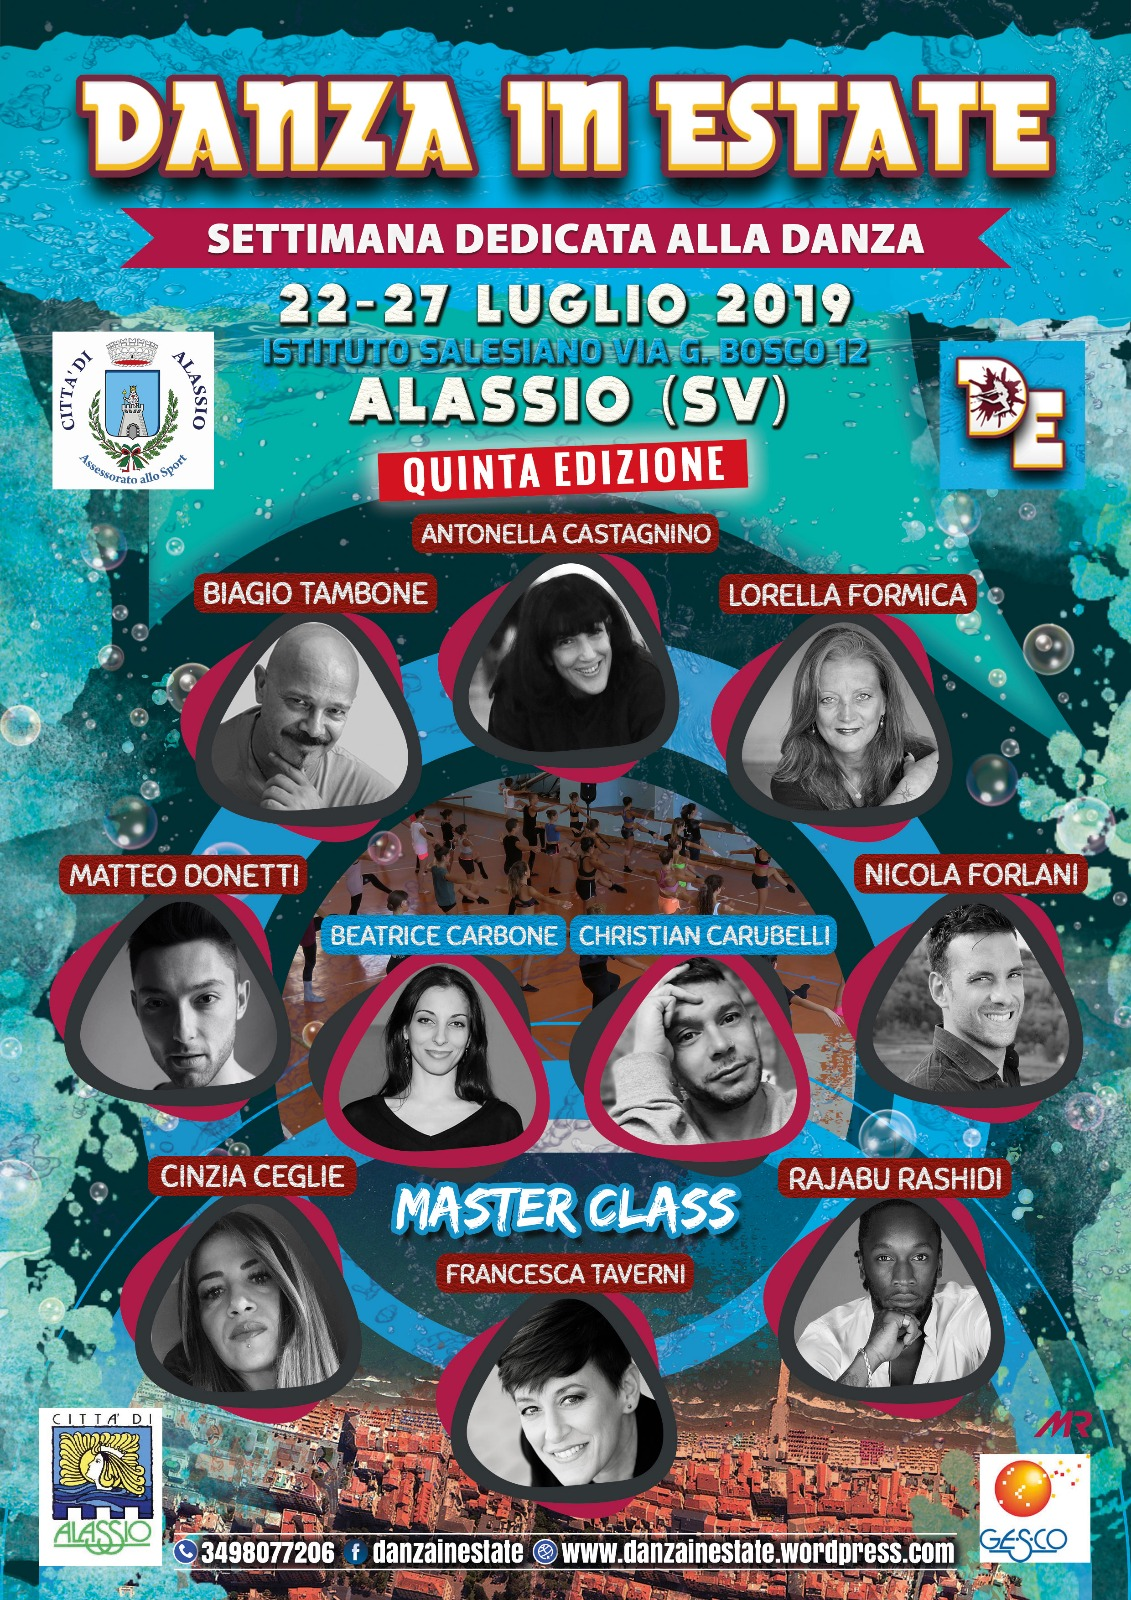 DANZA IN ESTATE 2019 (BANDO OSTELLO)